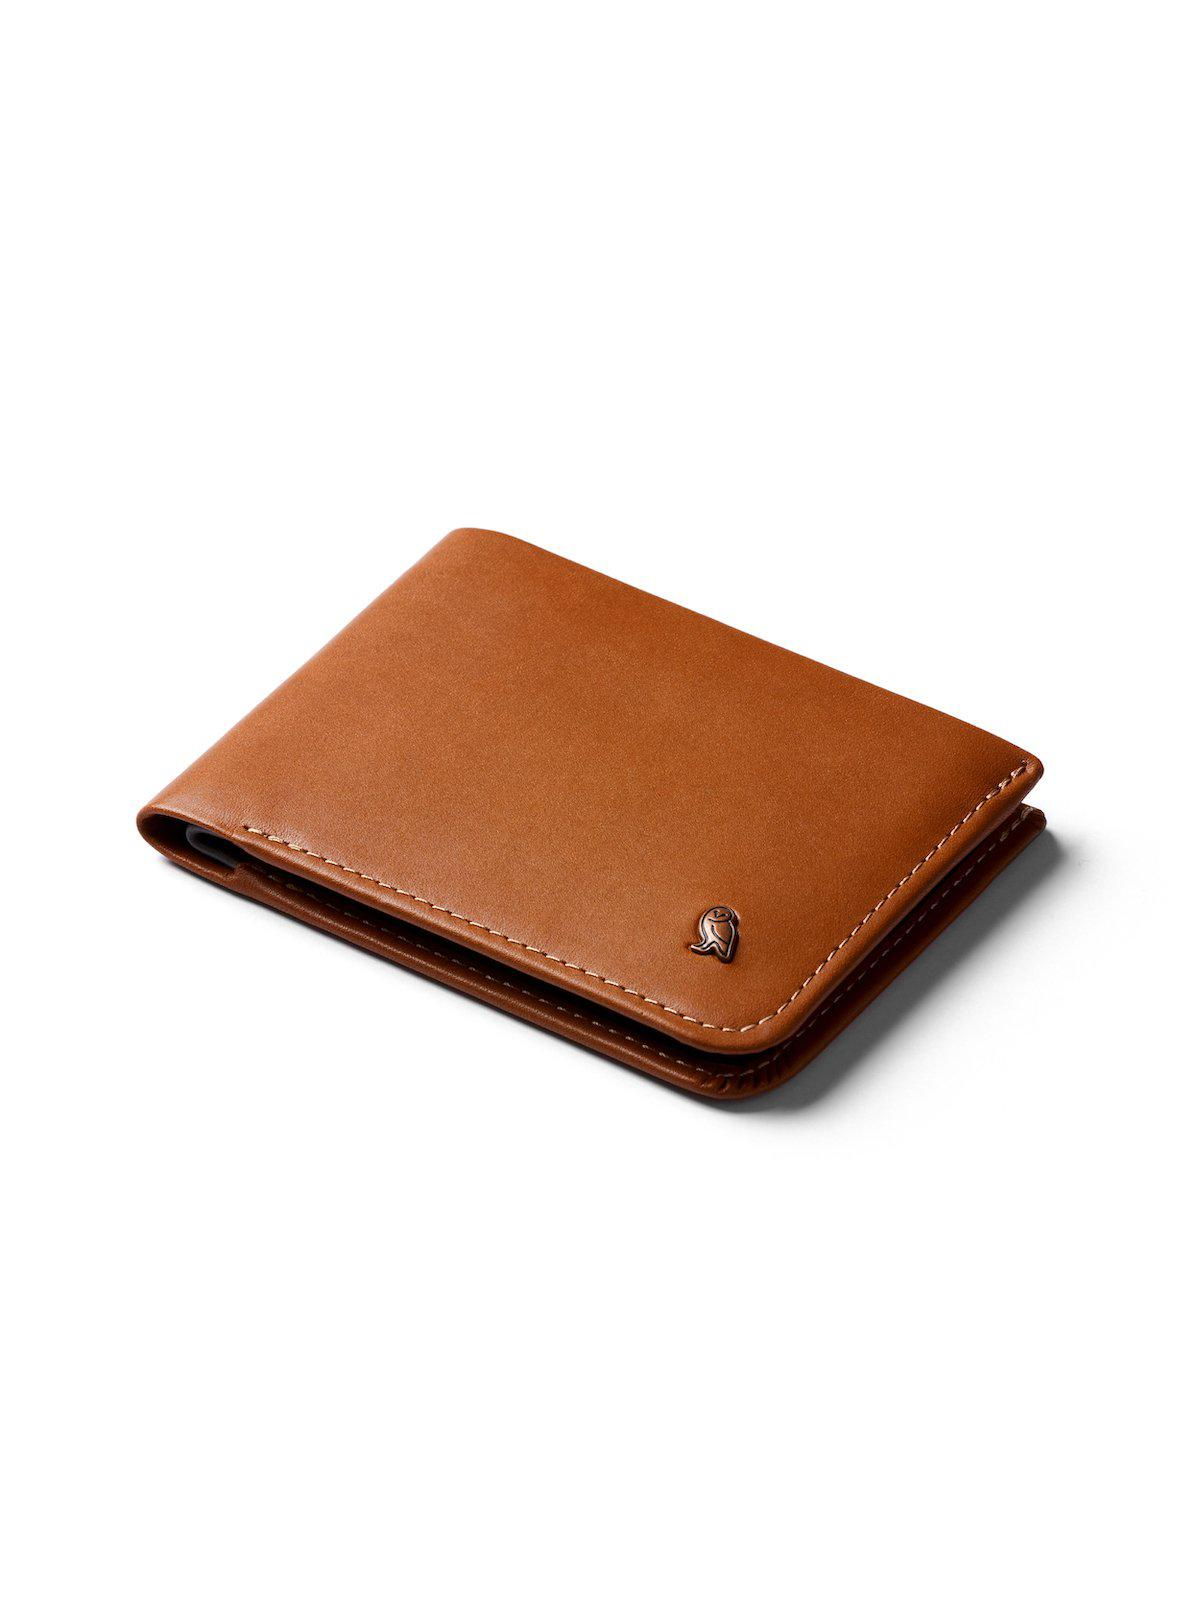 Bellroy Hide and Seek Wallet Caramel RFID - MORE by Morello Indonesia